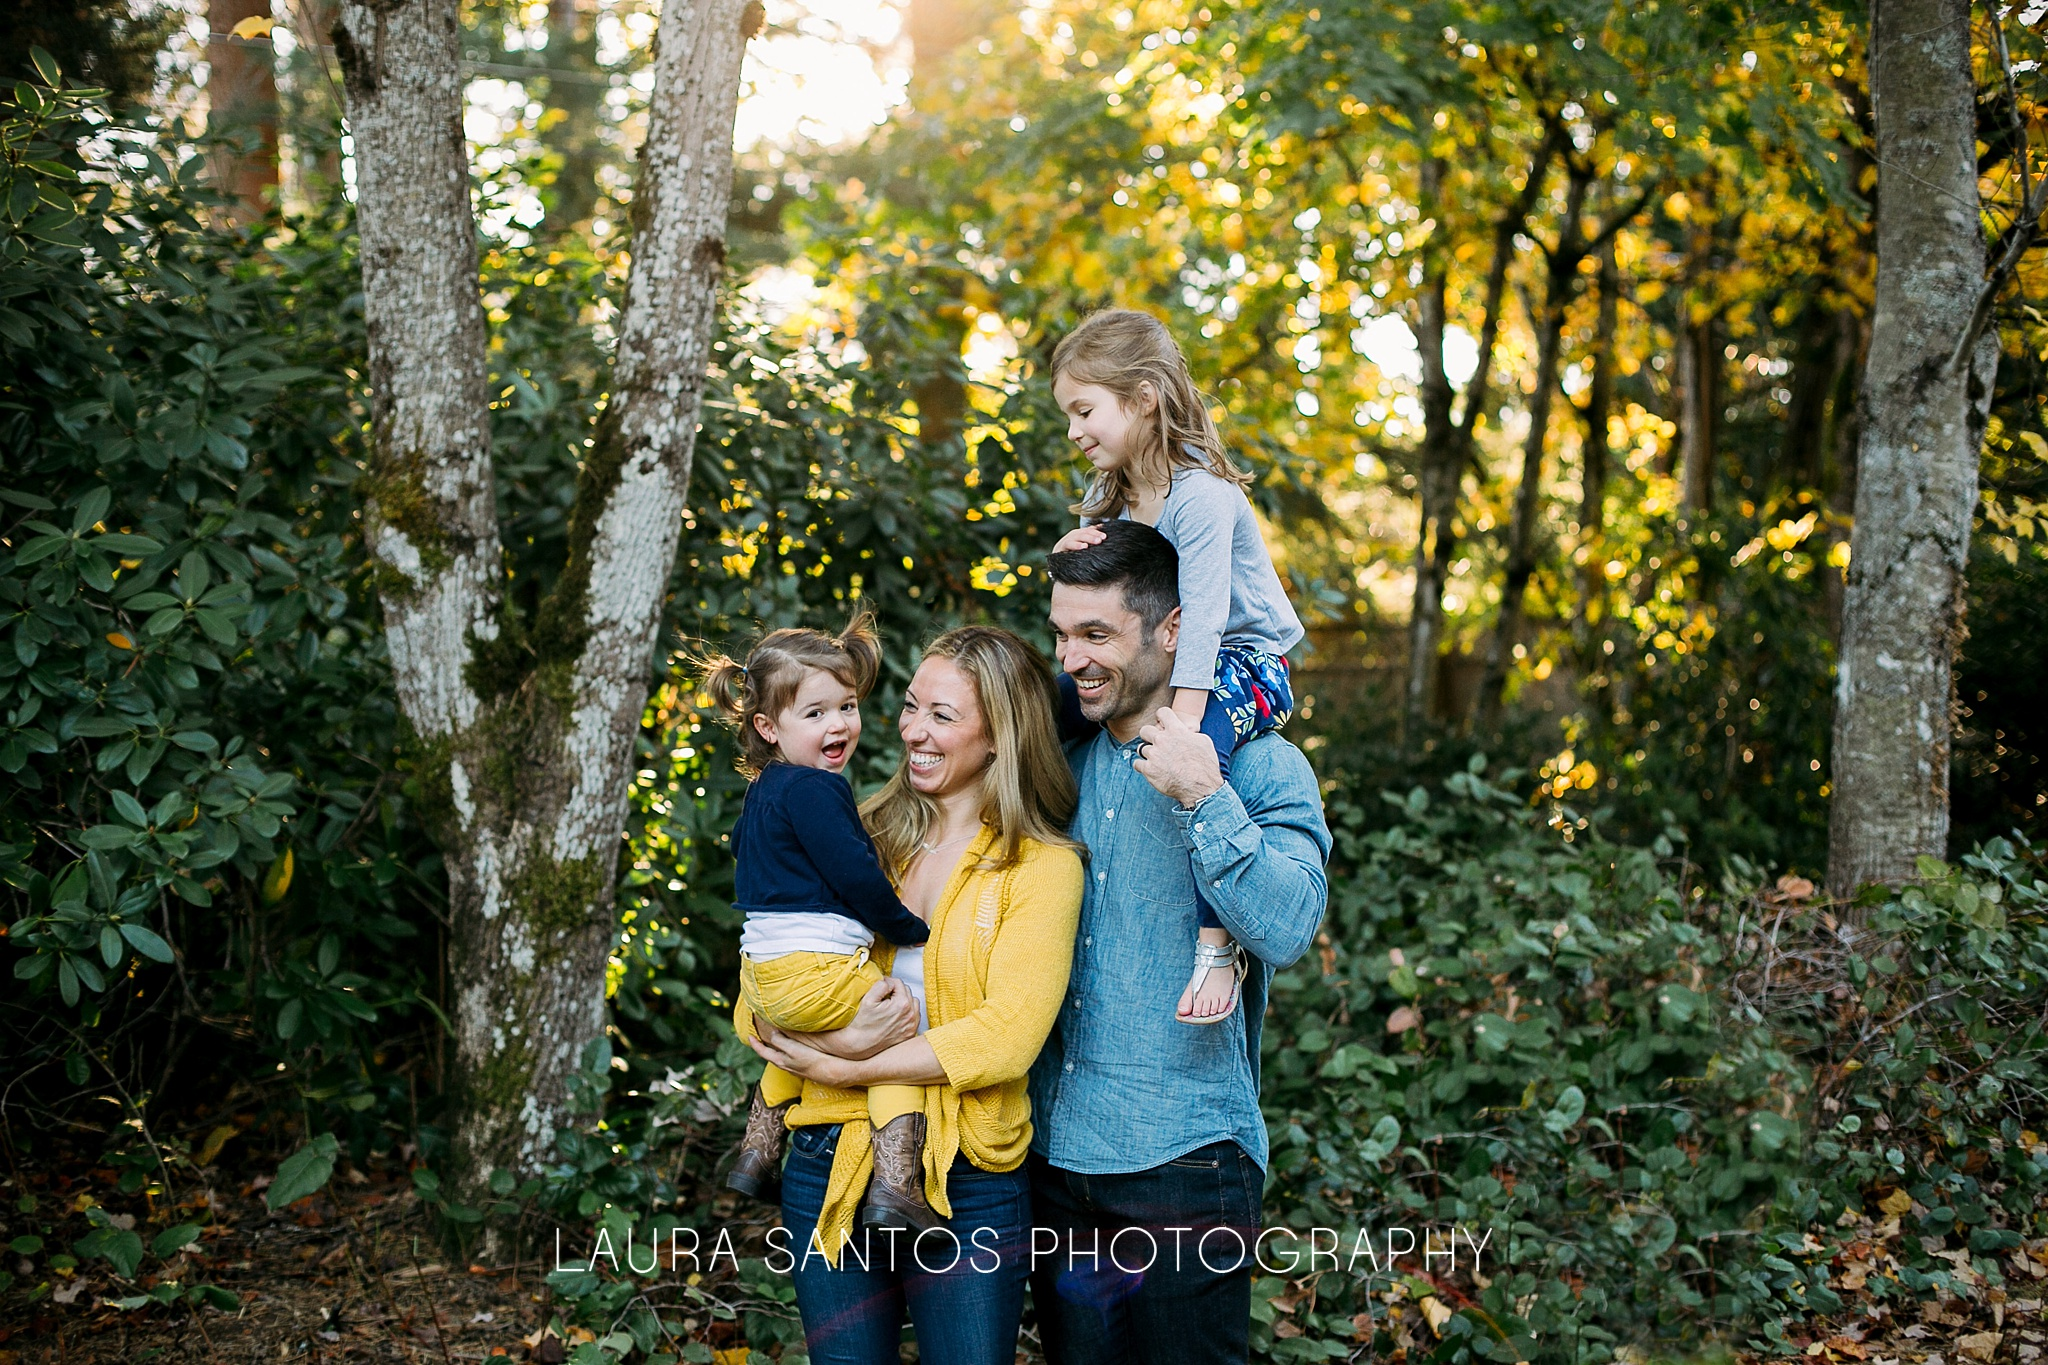 Laura Santos Photography Portland Oregon Family Photographer_0087.jpg